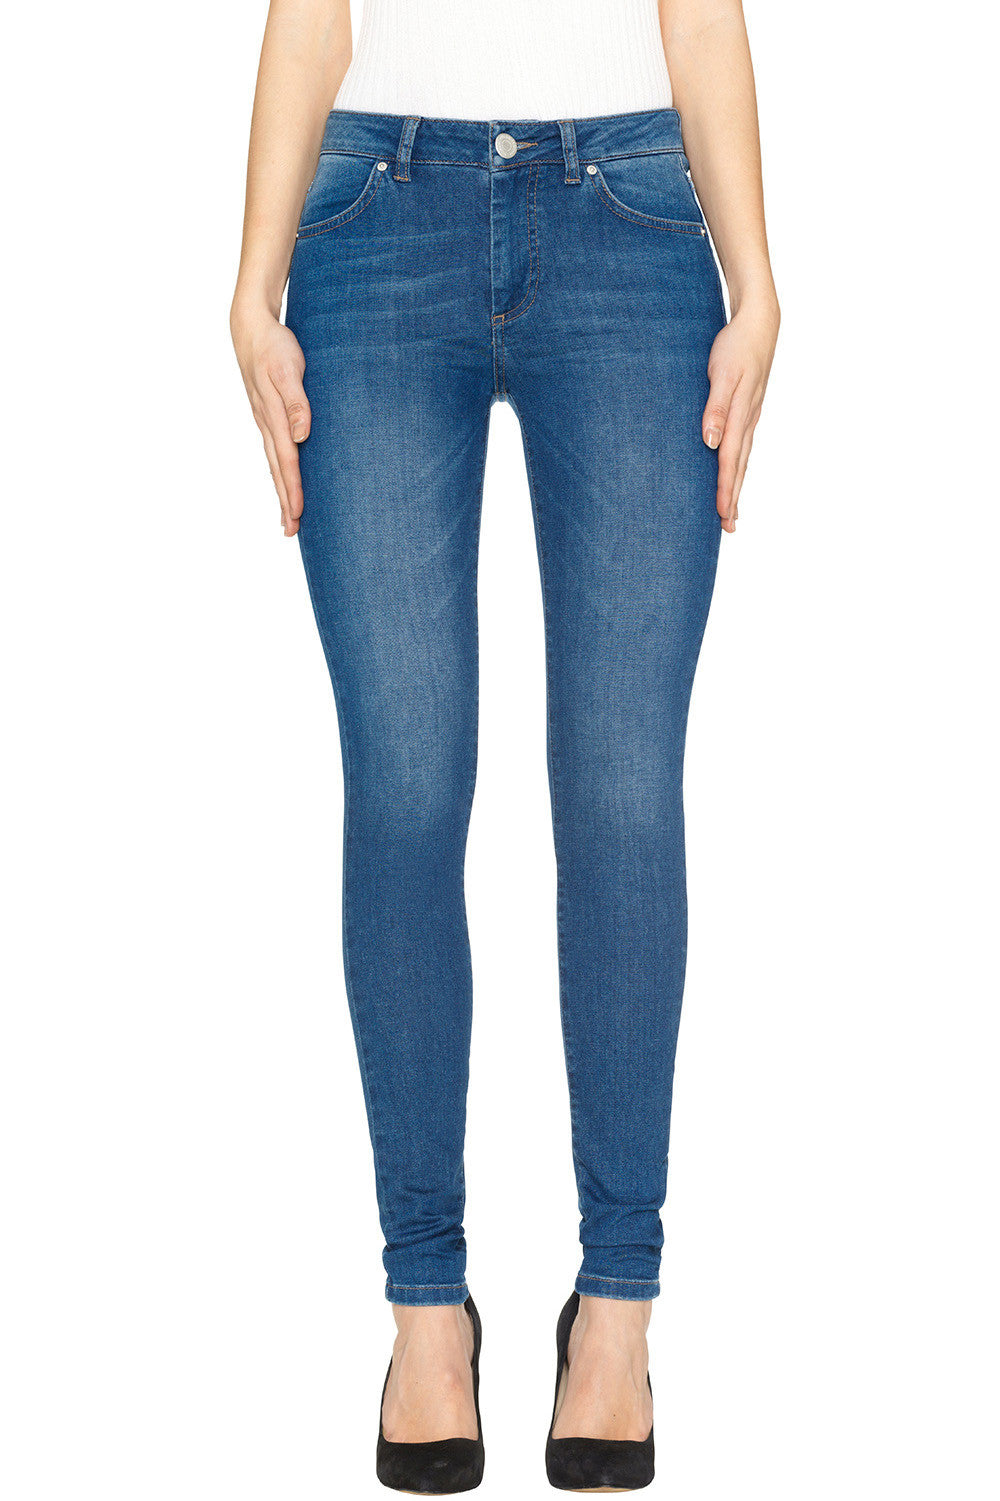 Five Units Penelope 395 Jeans - Spirit **OUT OF STOCK**